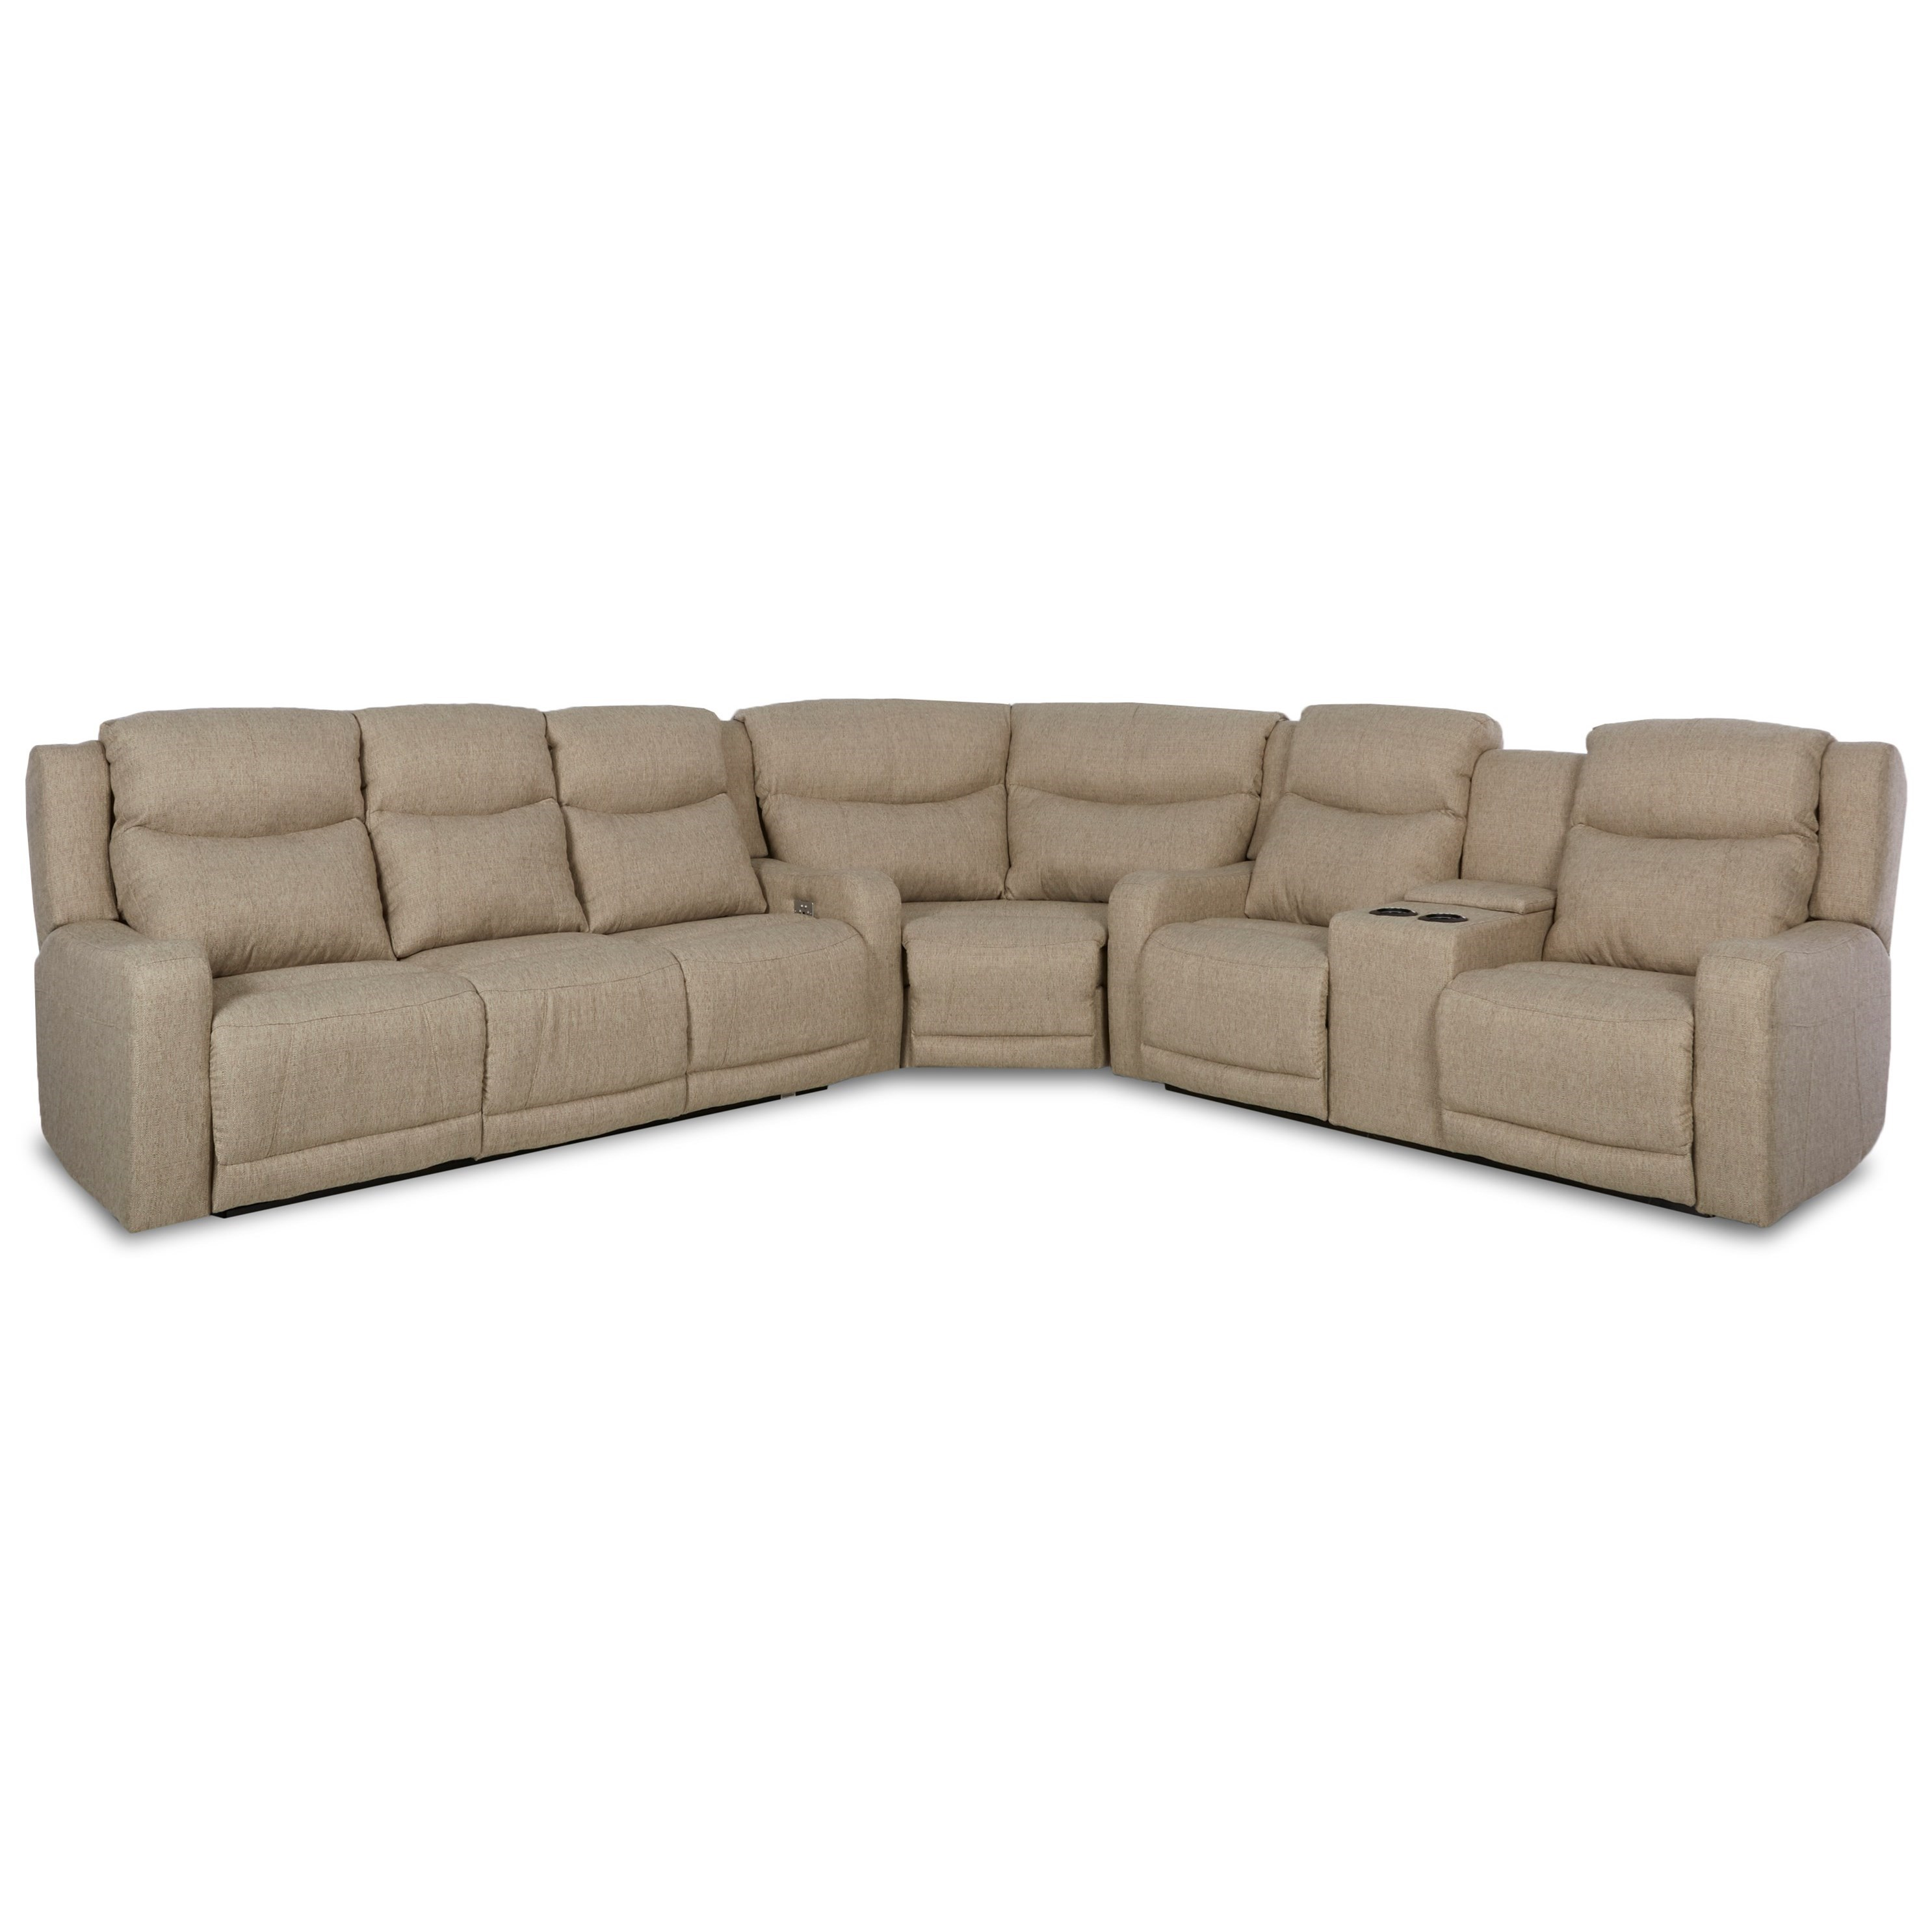 Three Pc Power Reclining Sectional Sofa With Adjustable Headrest And